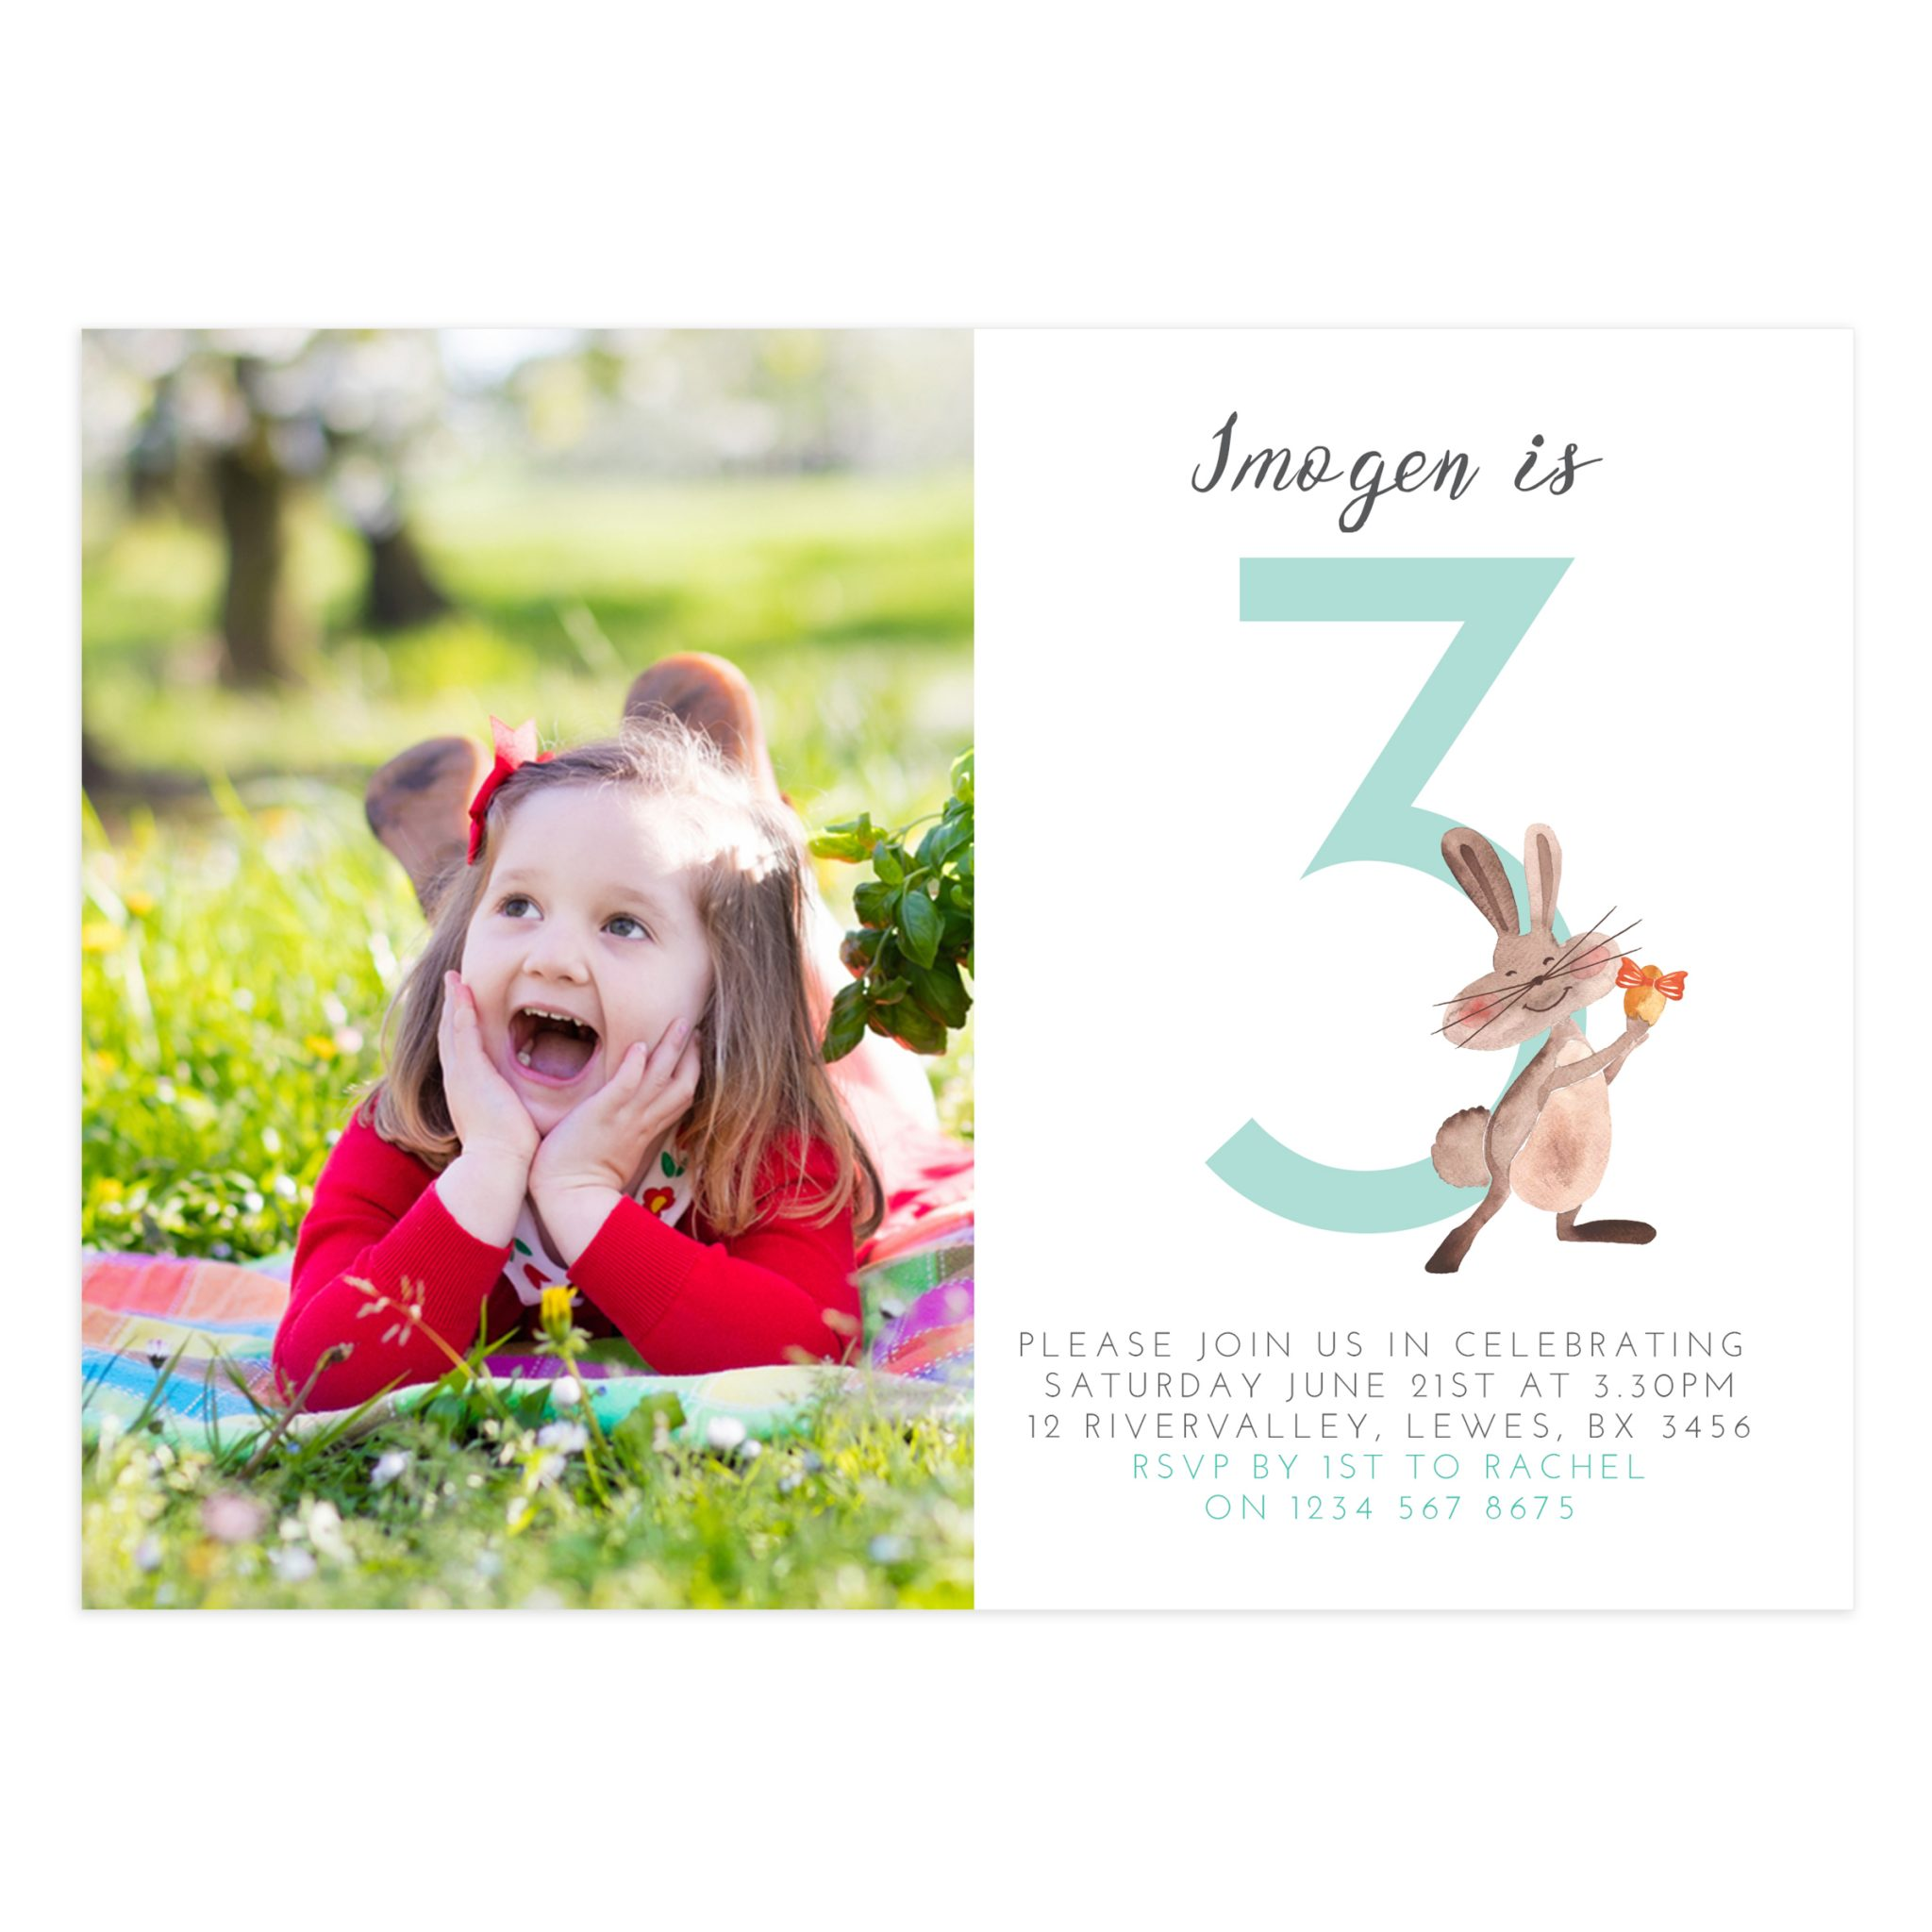 3rd birthday party invitation template 5x7